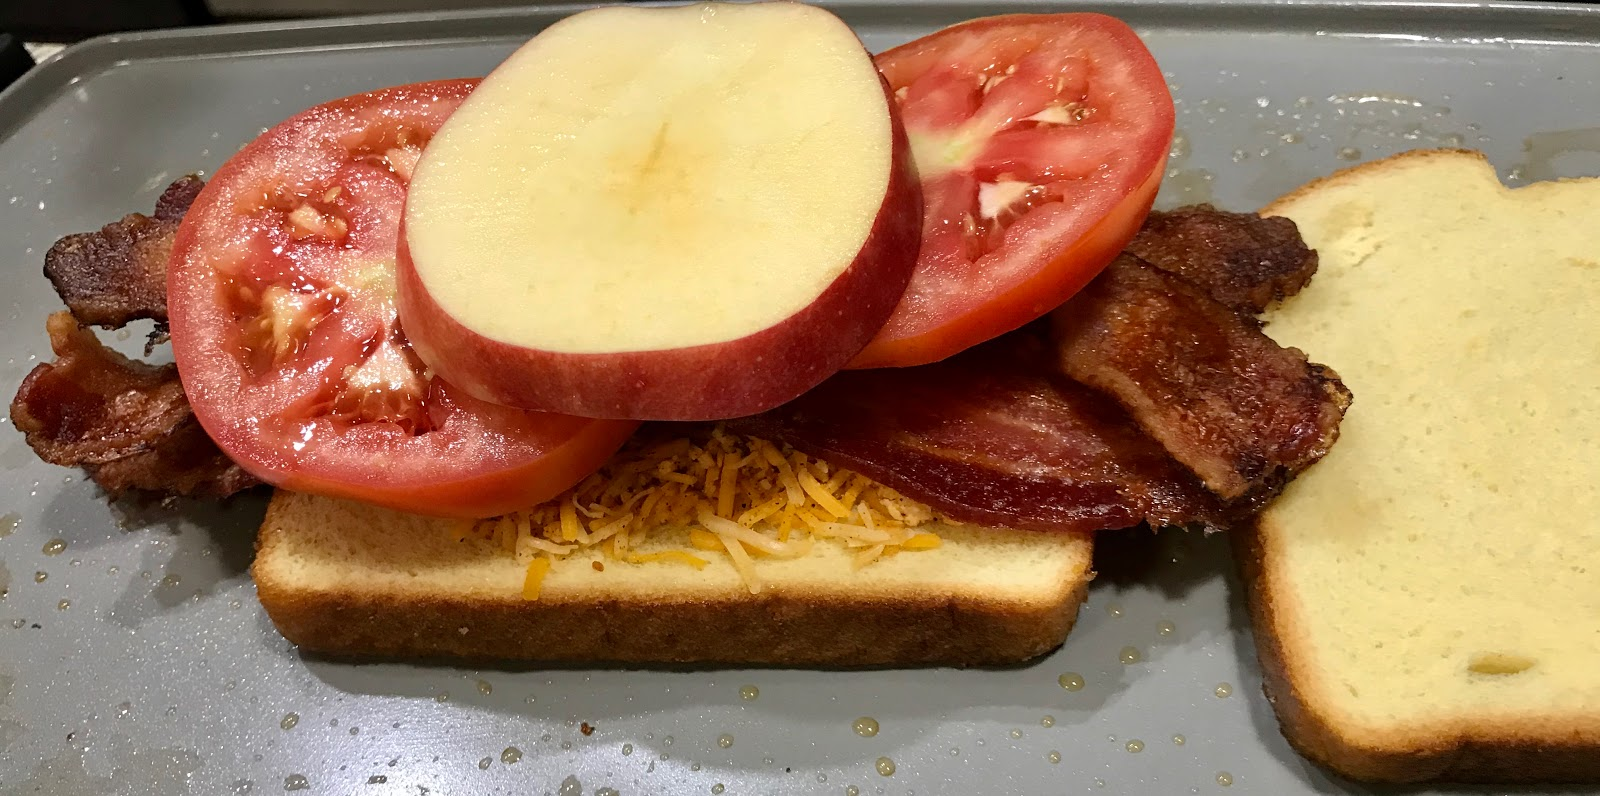 Cheese sandwich piles with bacon, tomato and apples